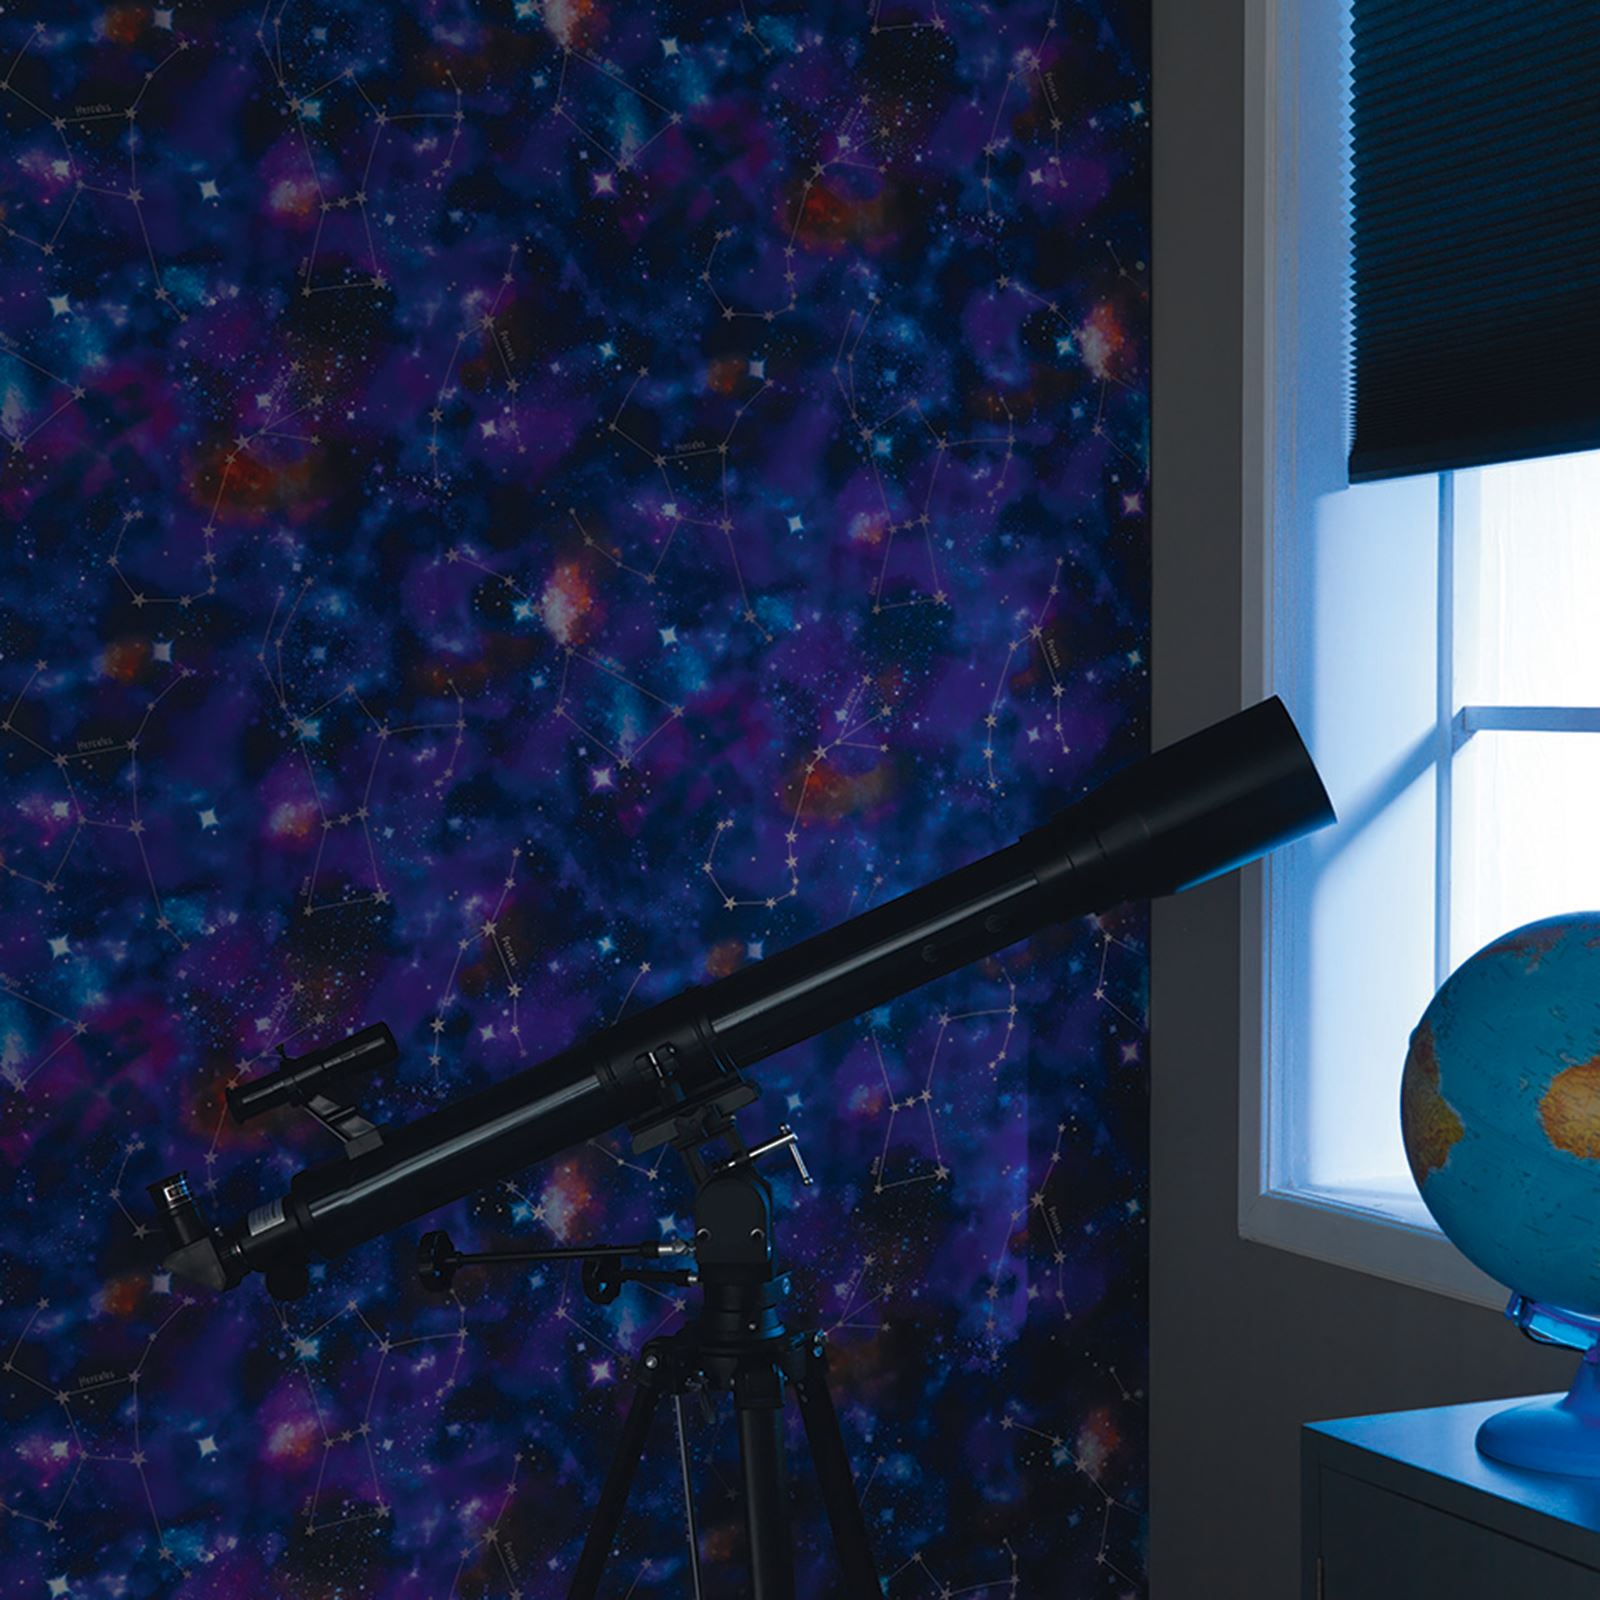 cosmic space spaceman wallpaper available in black & blue / purple